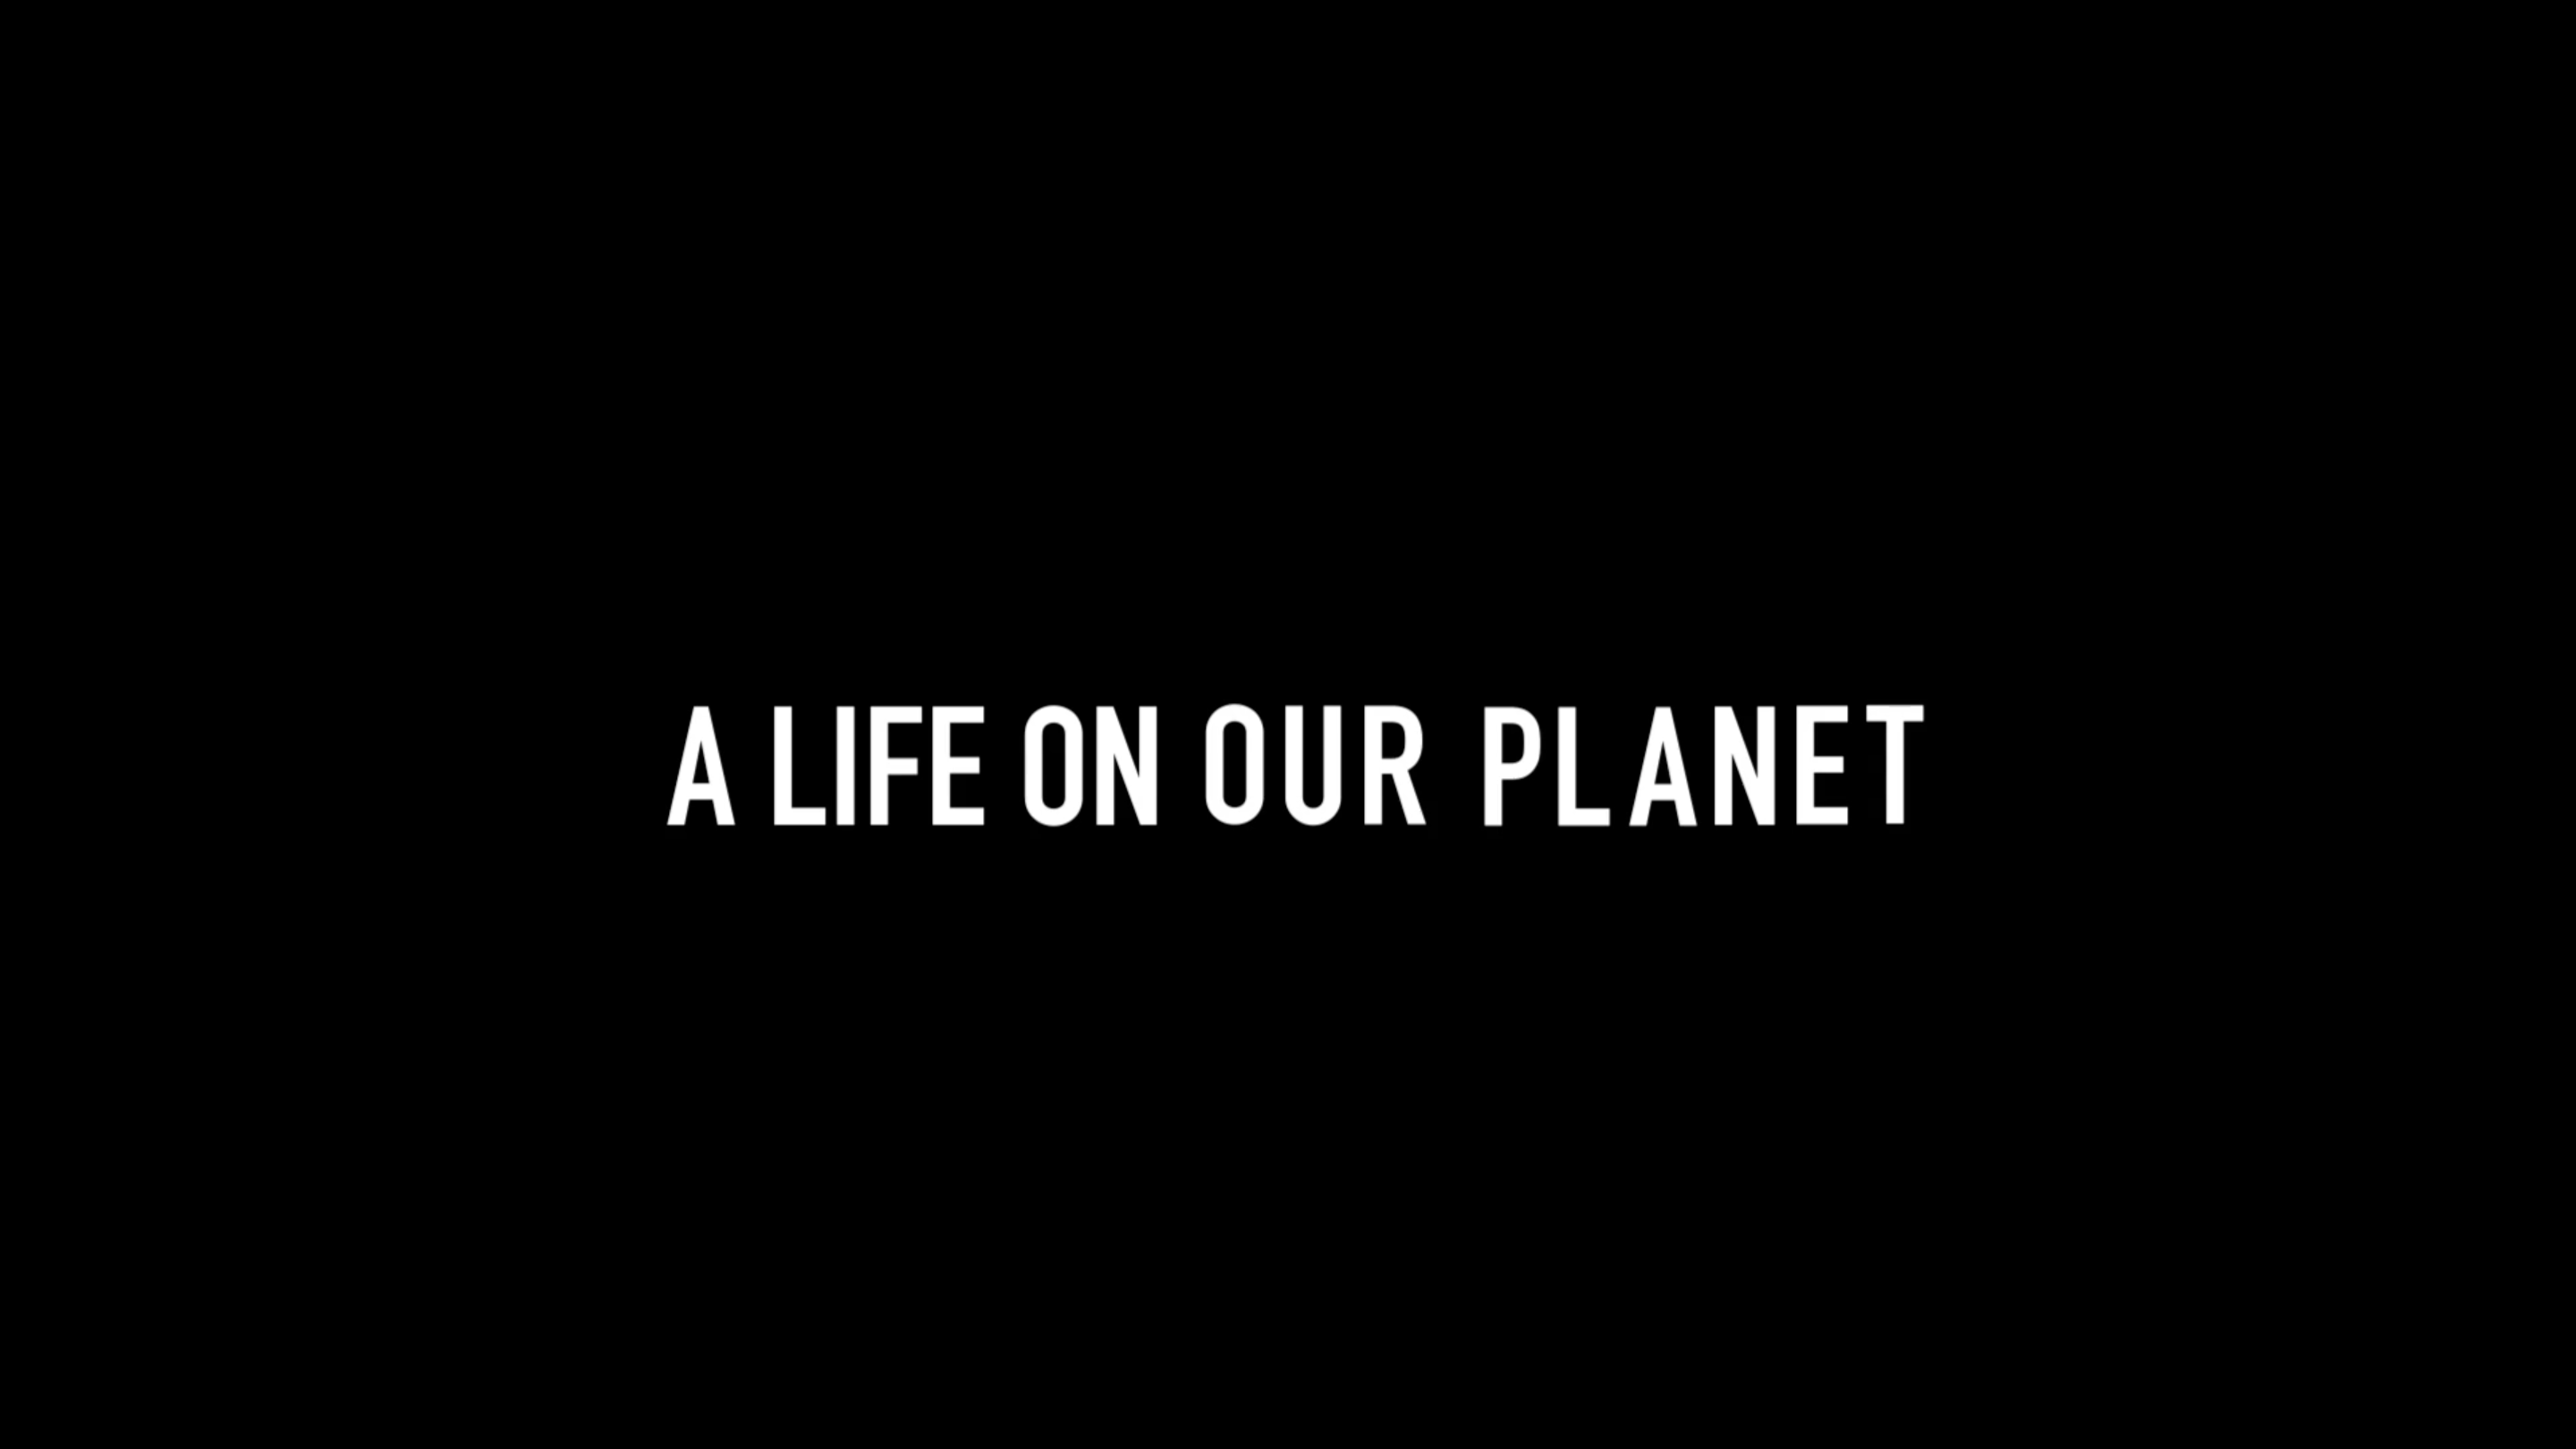 """""""A Life on Our Planet"""" in bold white text on a black background."""